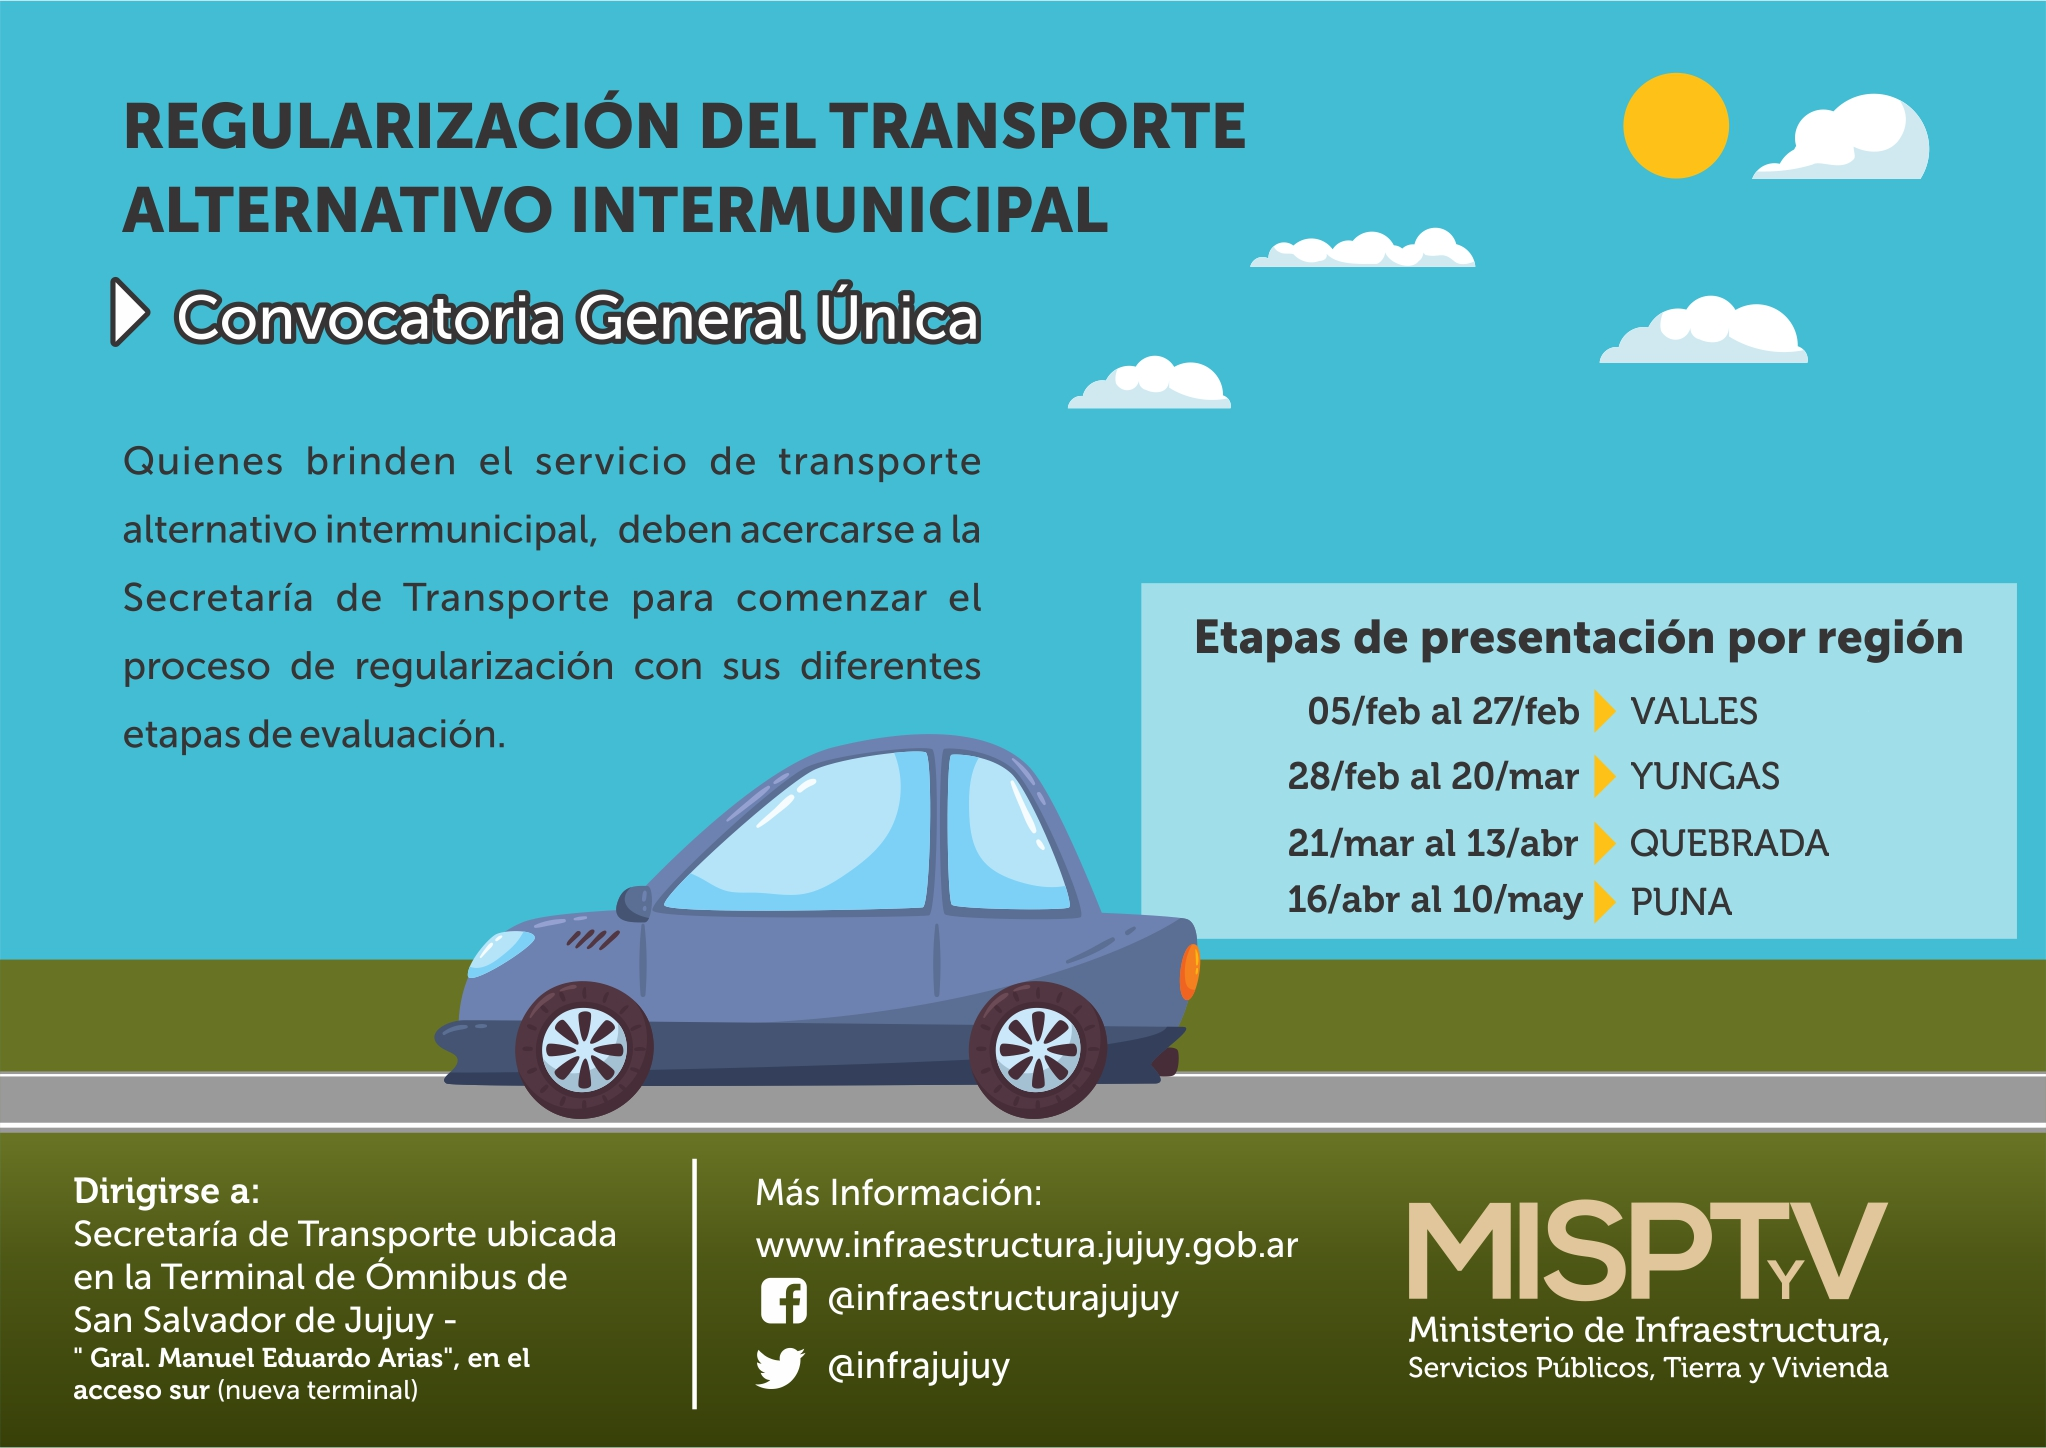 18.1.19 TRANsPORTE - regularizacion del transporte alternativo intermunicipal